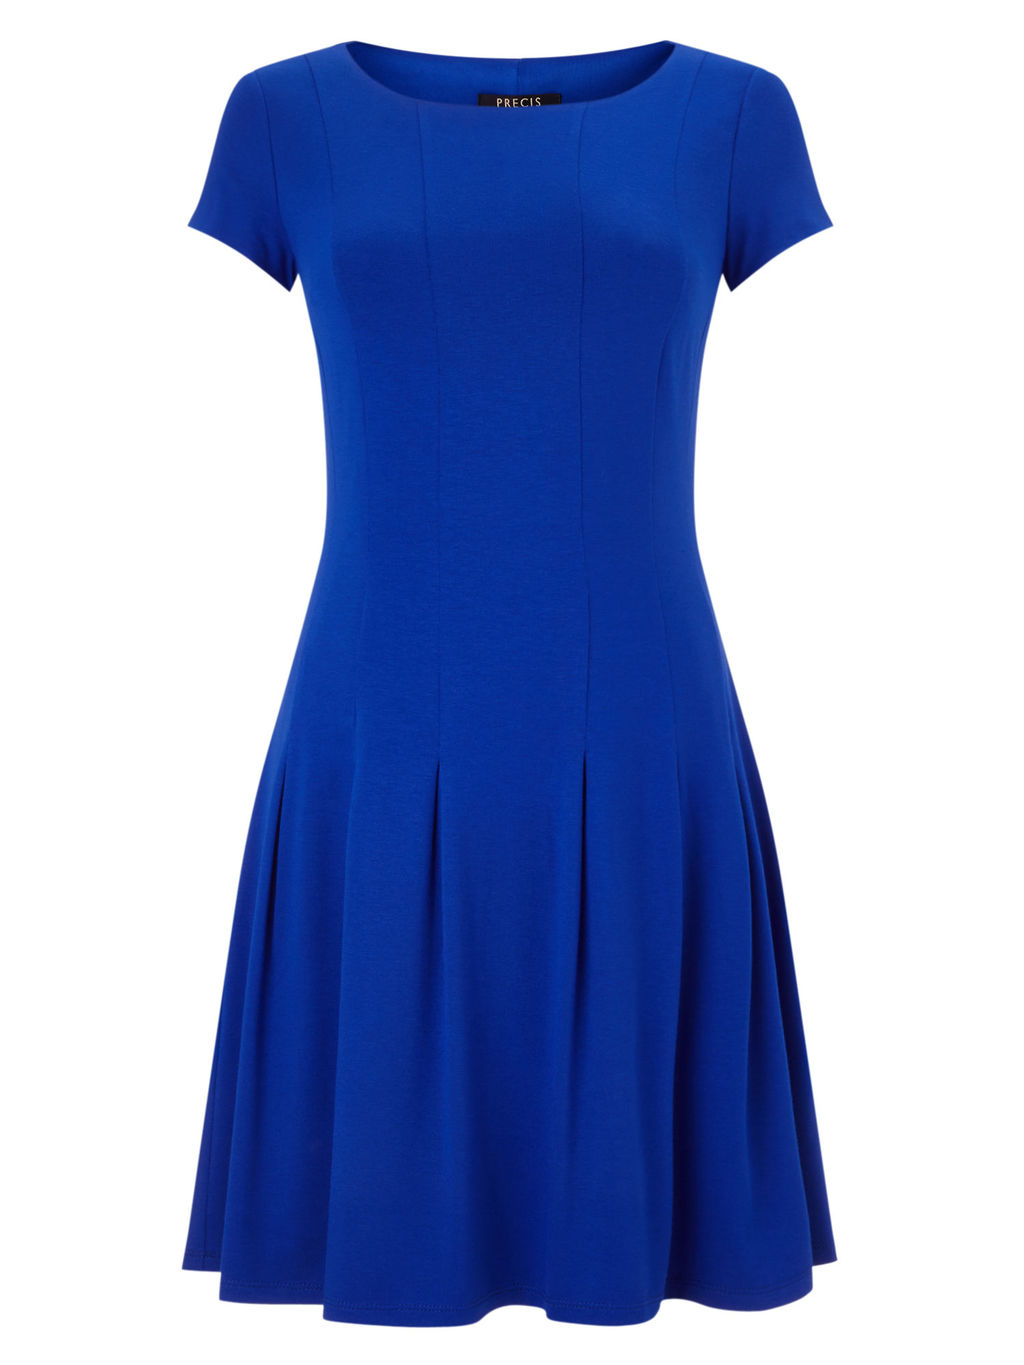 Pleated Jersey Dress - neckline: round neck; pattern: plain; predominant colour: royal blue; occasions: evening; length: on the knee; fit: fitted at waist & bust; style: fit & flare; fibres: viscose/rayon - stretch; sleeve length: short sleeve; sleeve style: standard; pattern type: fabric; texture group: jersey - stretchy/drapey; season: s/s 2016; wardrobe: event